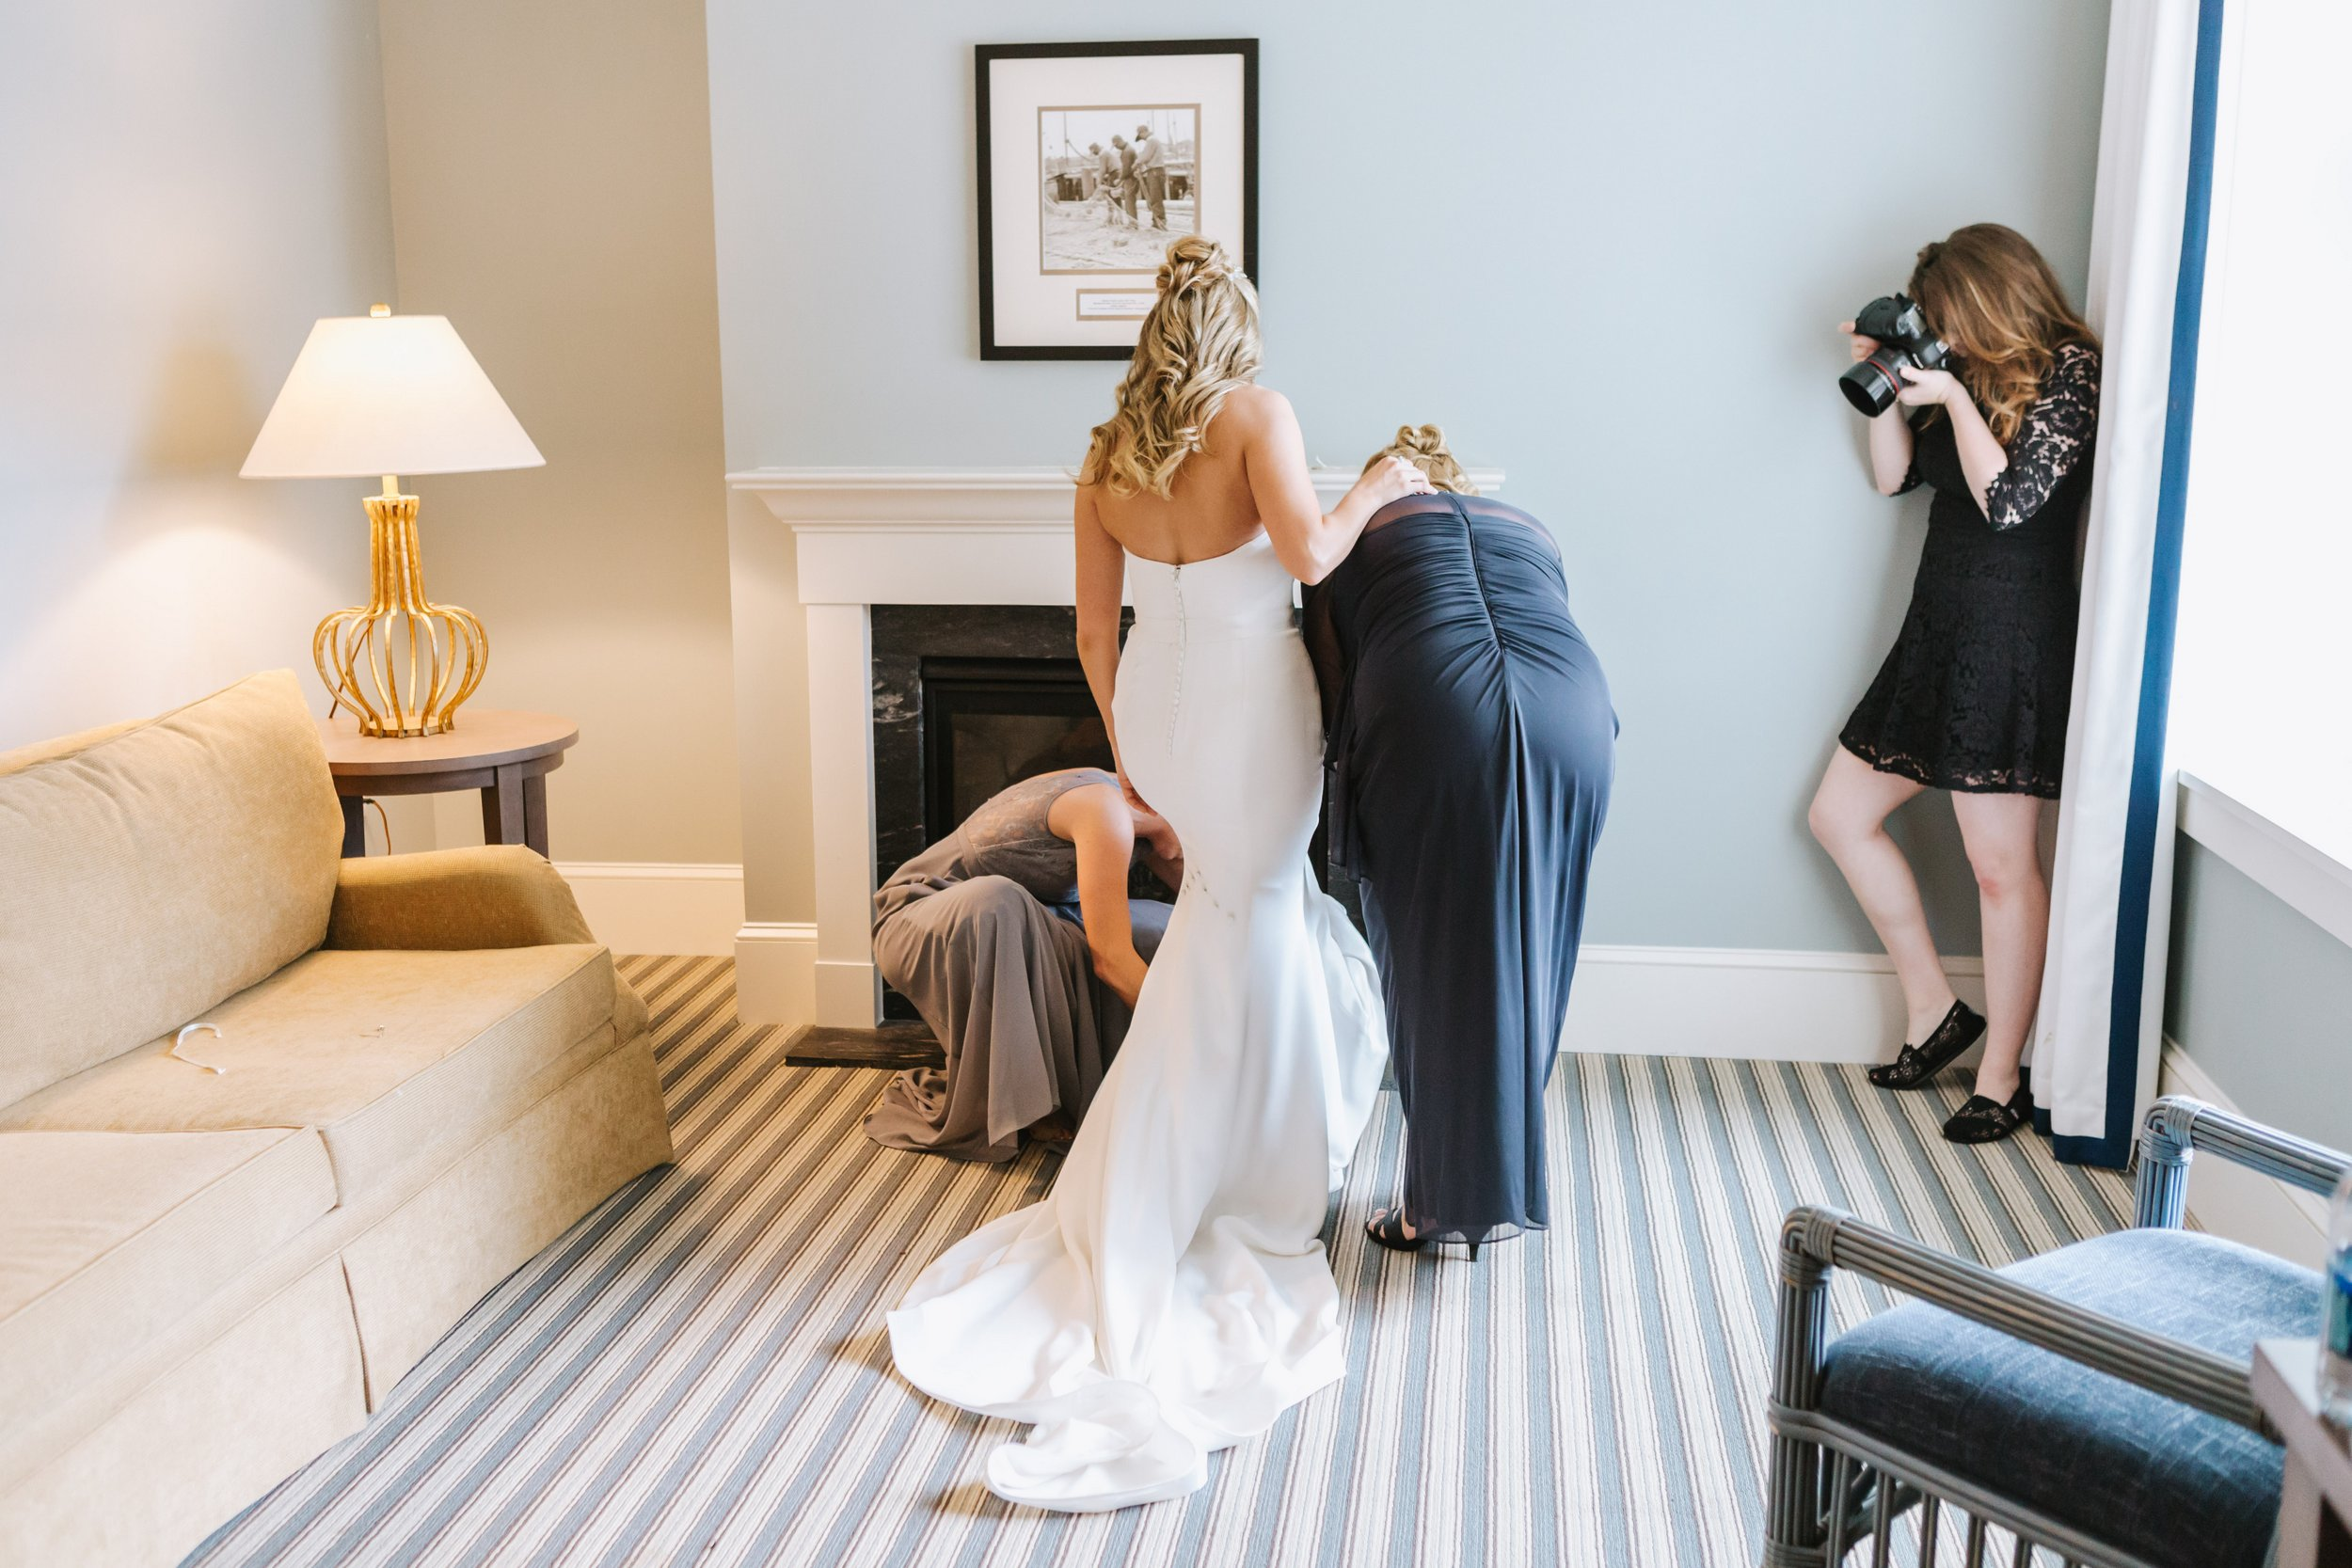 Lena-Mirisola-Boston-Wedding-Photographer-Behind-The-Scenes-49.jpg